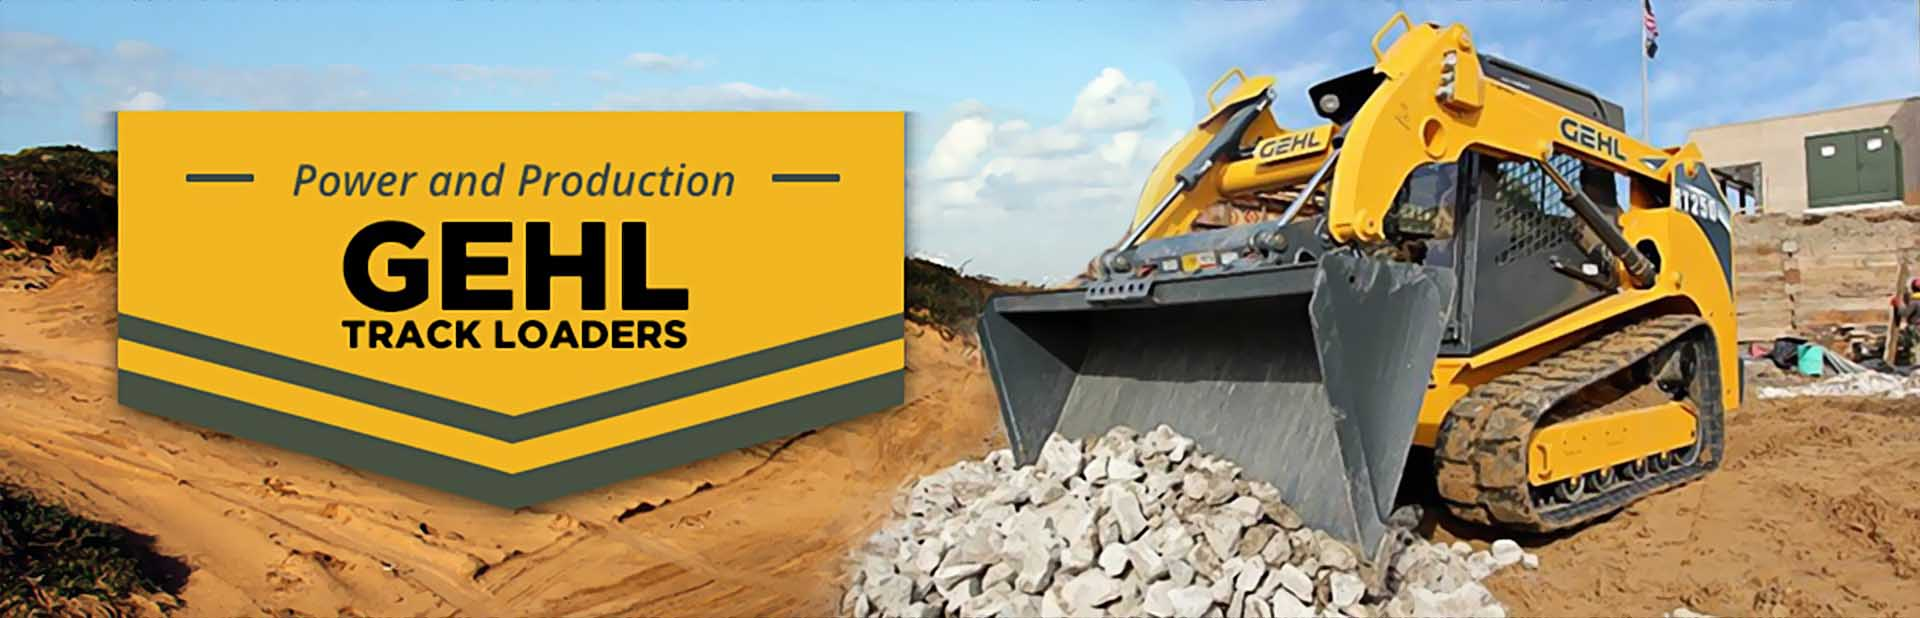 Gehl Track Loaders: Click here to view the models.